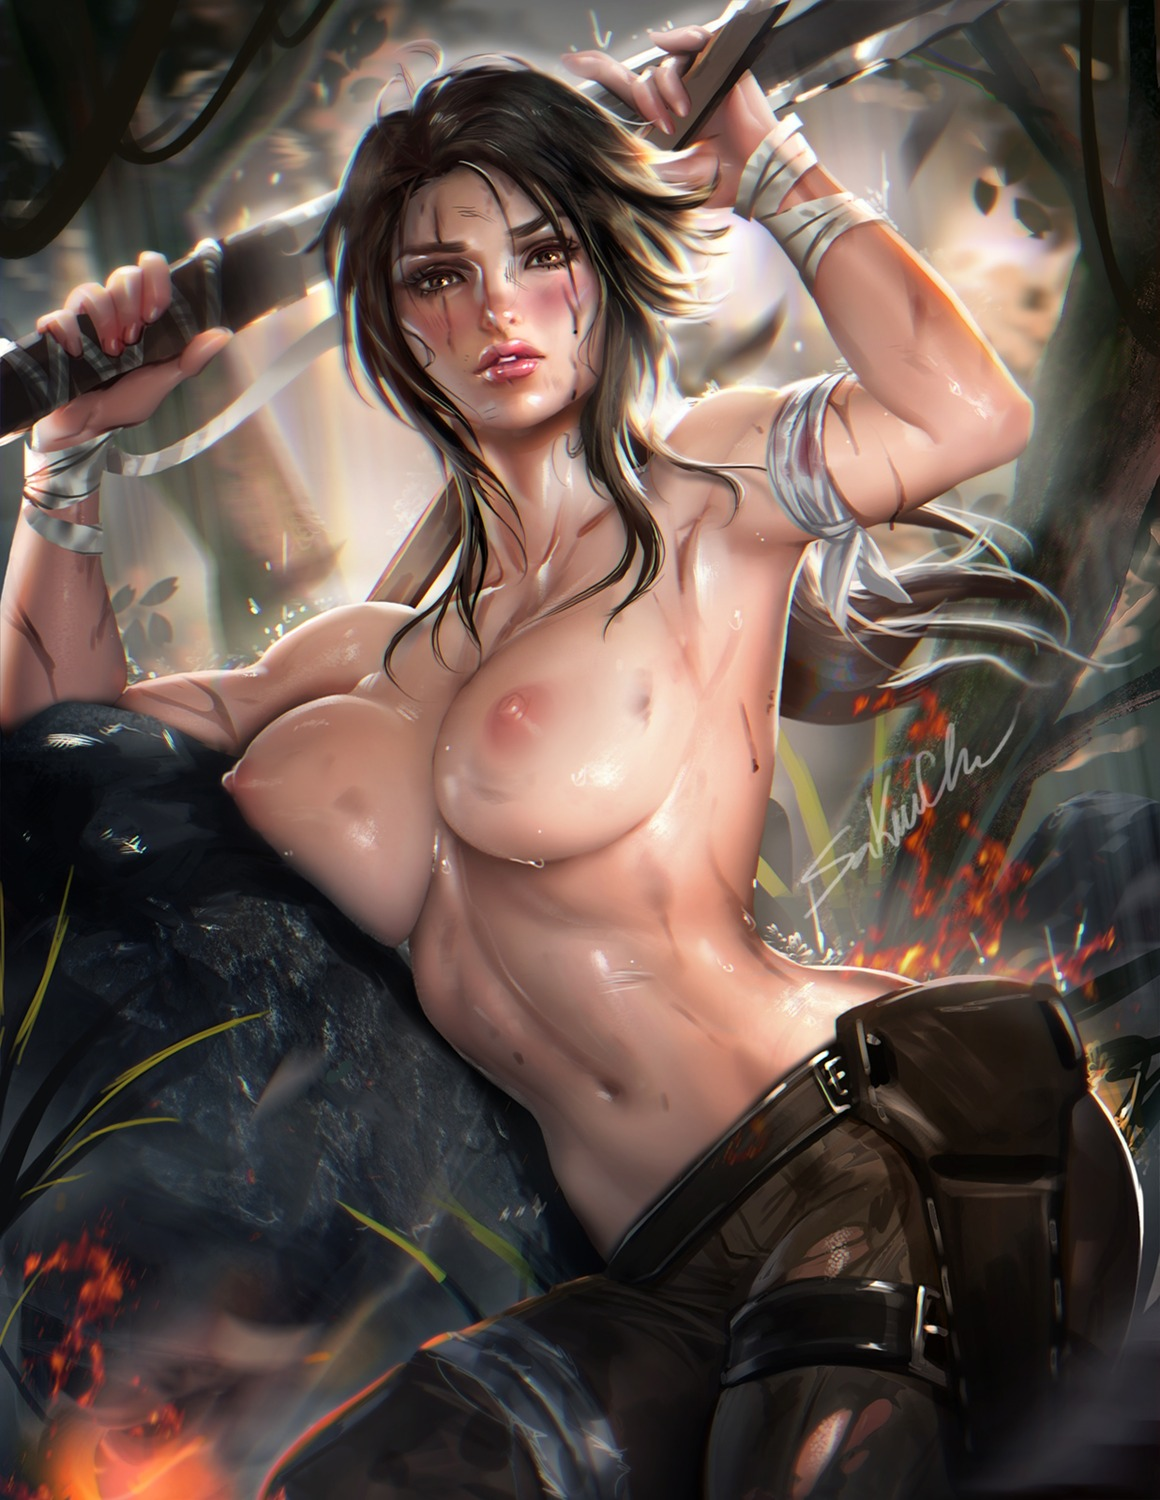 bandages blood lara_croft nipples sakimichan tomb_raider topless weapon